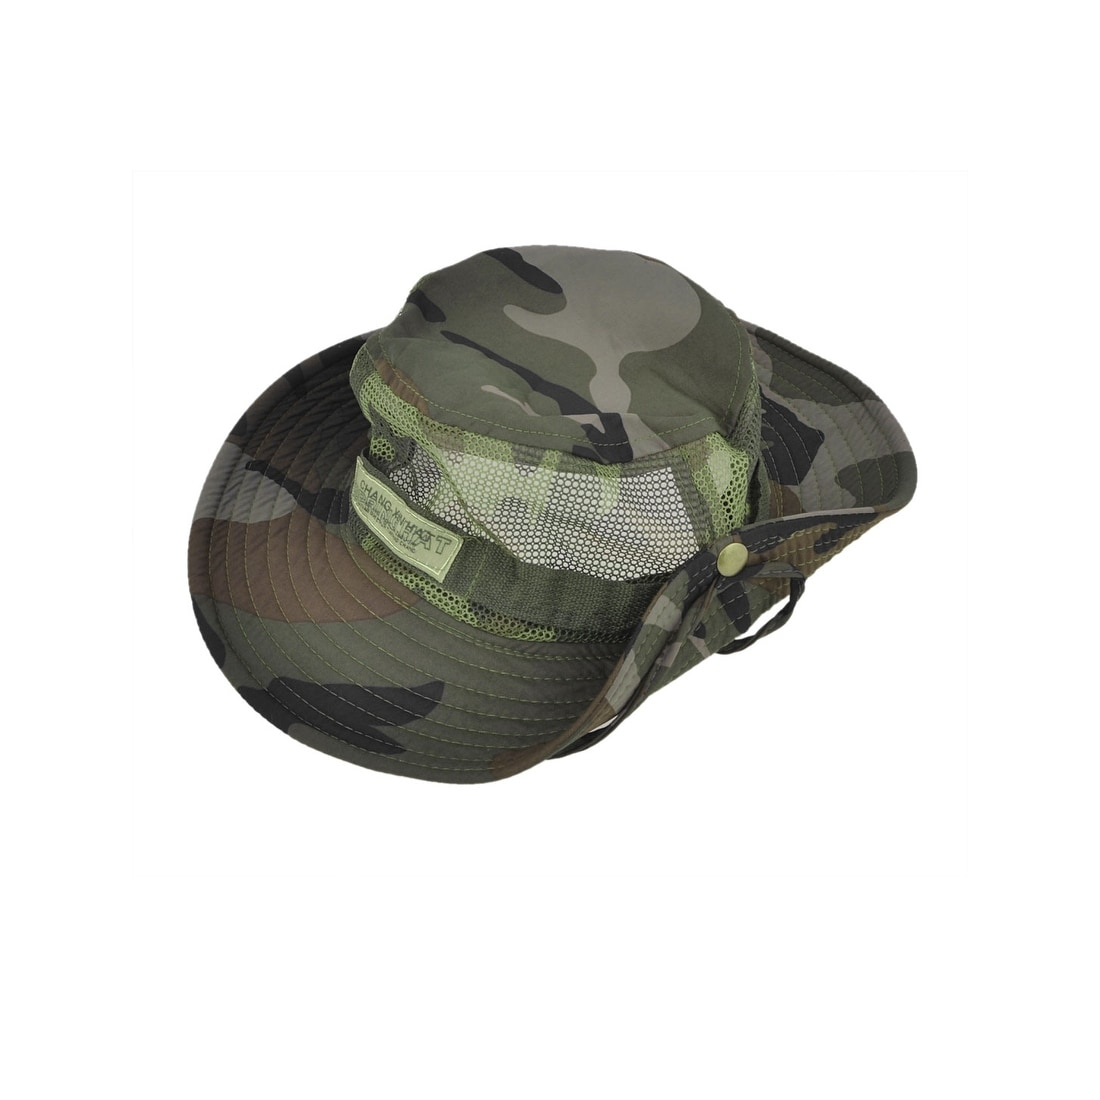 7b0d5181981 Shop Unique Bargains Men Women Adjustable Nylon Hiking Fishing Cap Sun Hat  Mesh Style - Free Shipping On Orders Over  45 - Overstock - 18438462